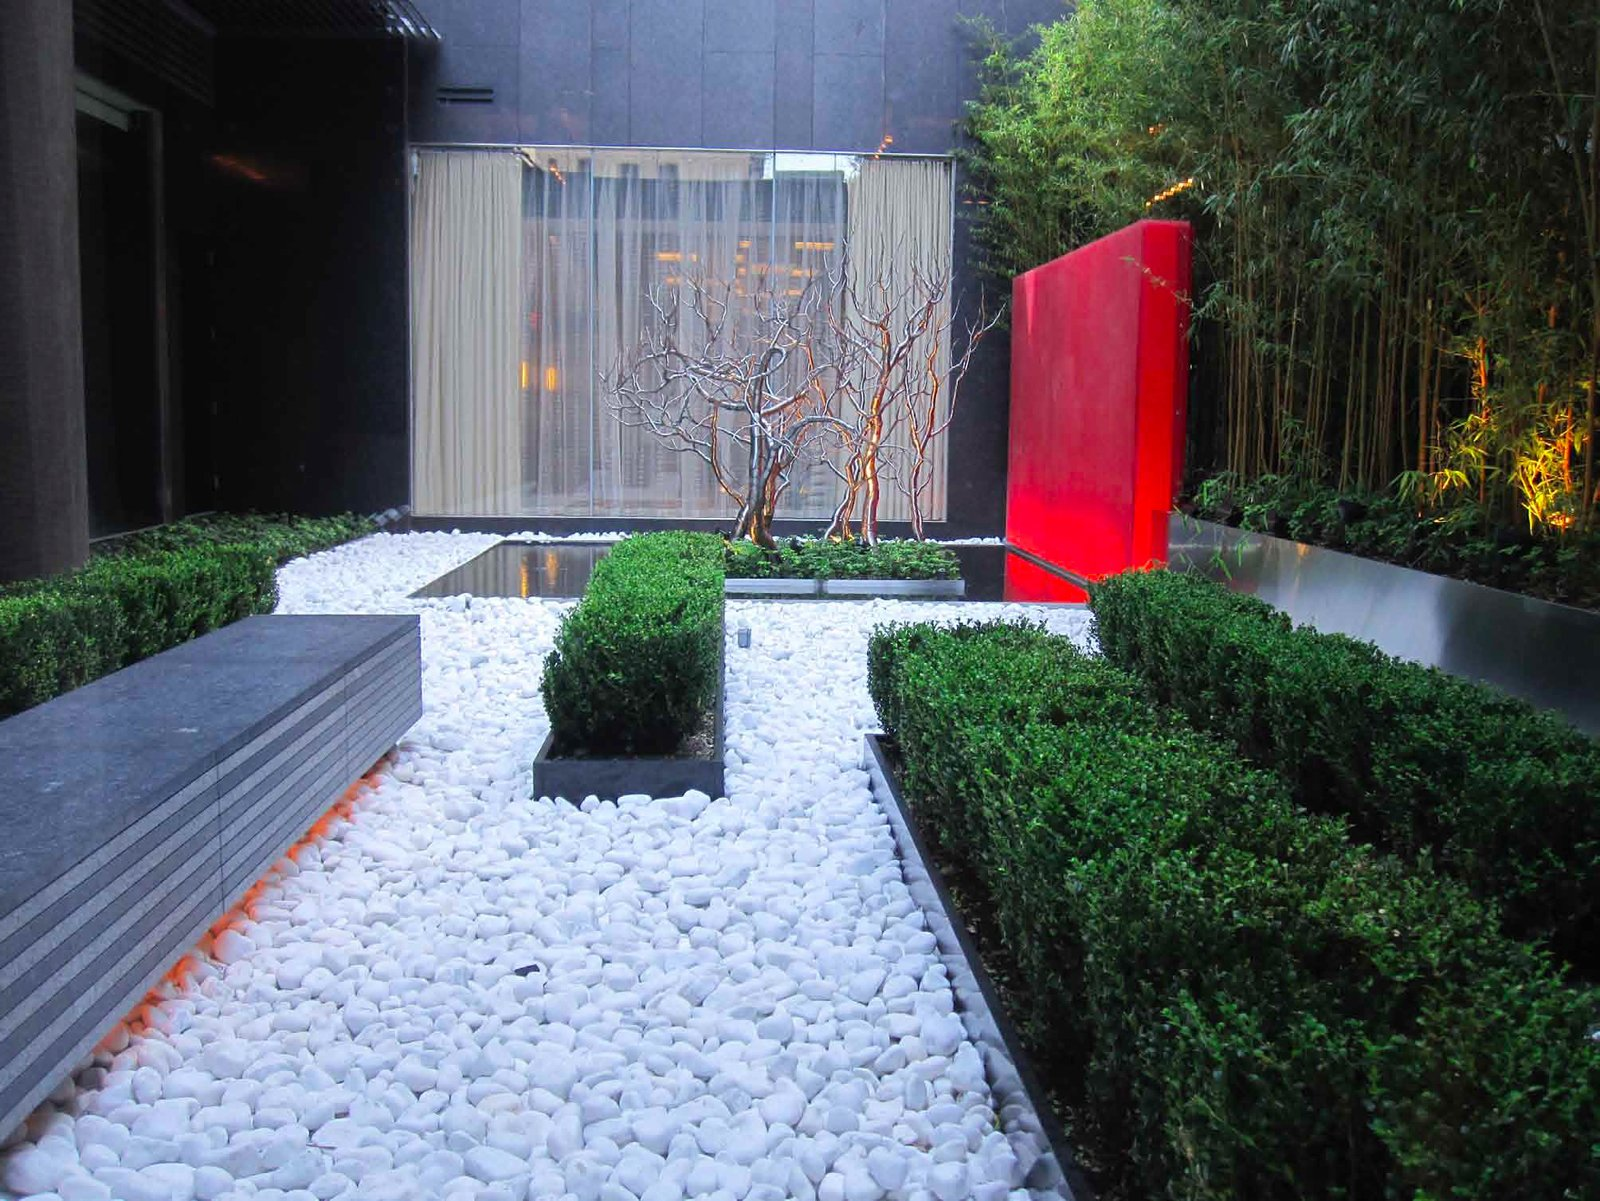 A serene garden courtyard for Intercontinental Hotel lives in an unlikely location – busy and bright Times Square. The four star hotel desired a courtyard with a memorable first impression and Thomas Balsley Associates delivered by creating a noticeable contrast from the hotel's surroundings. Photo courtesy of Thomas Balsley Associates.  New York Landscape Architects Design Awards by Sara Carpenter